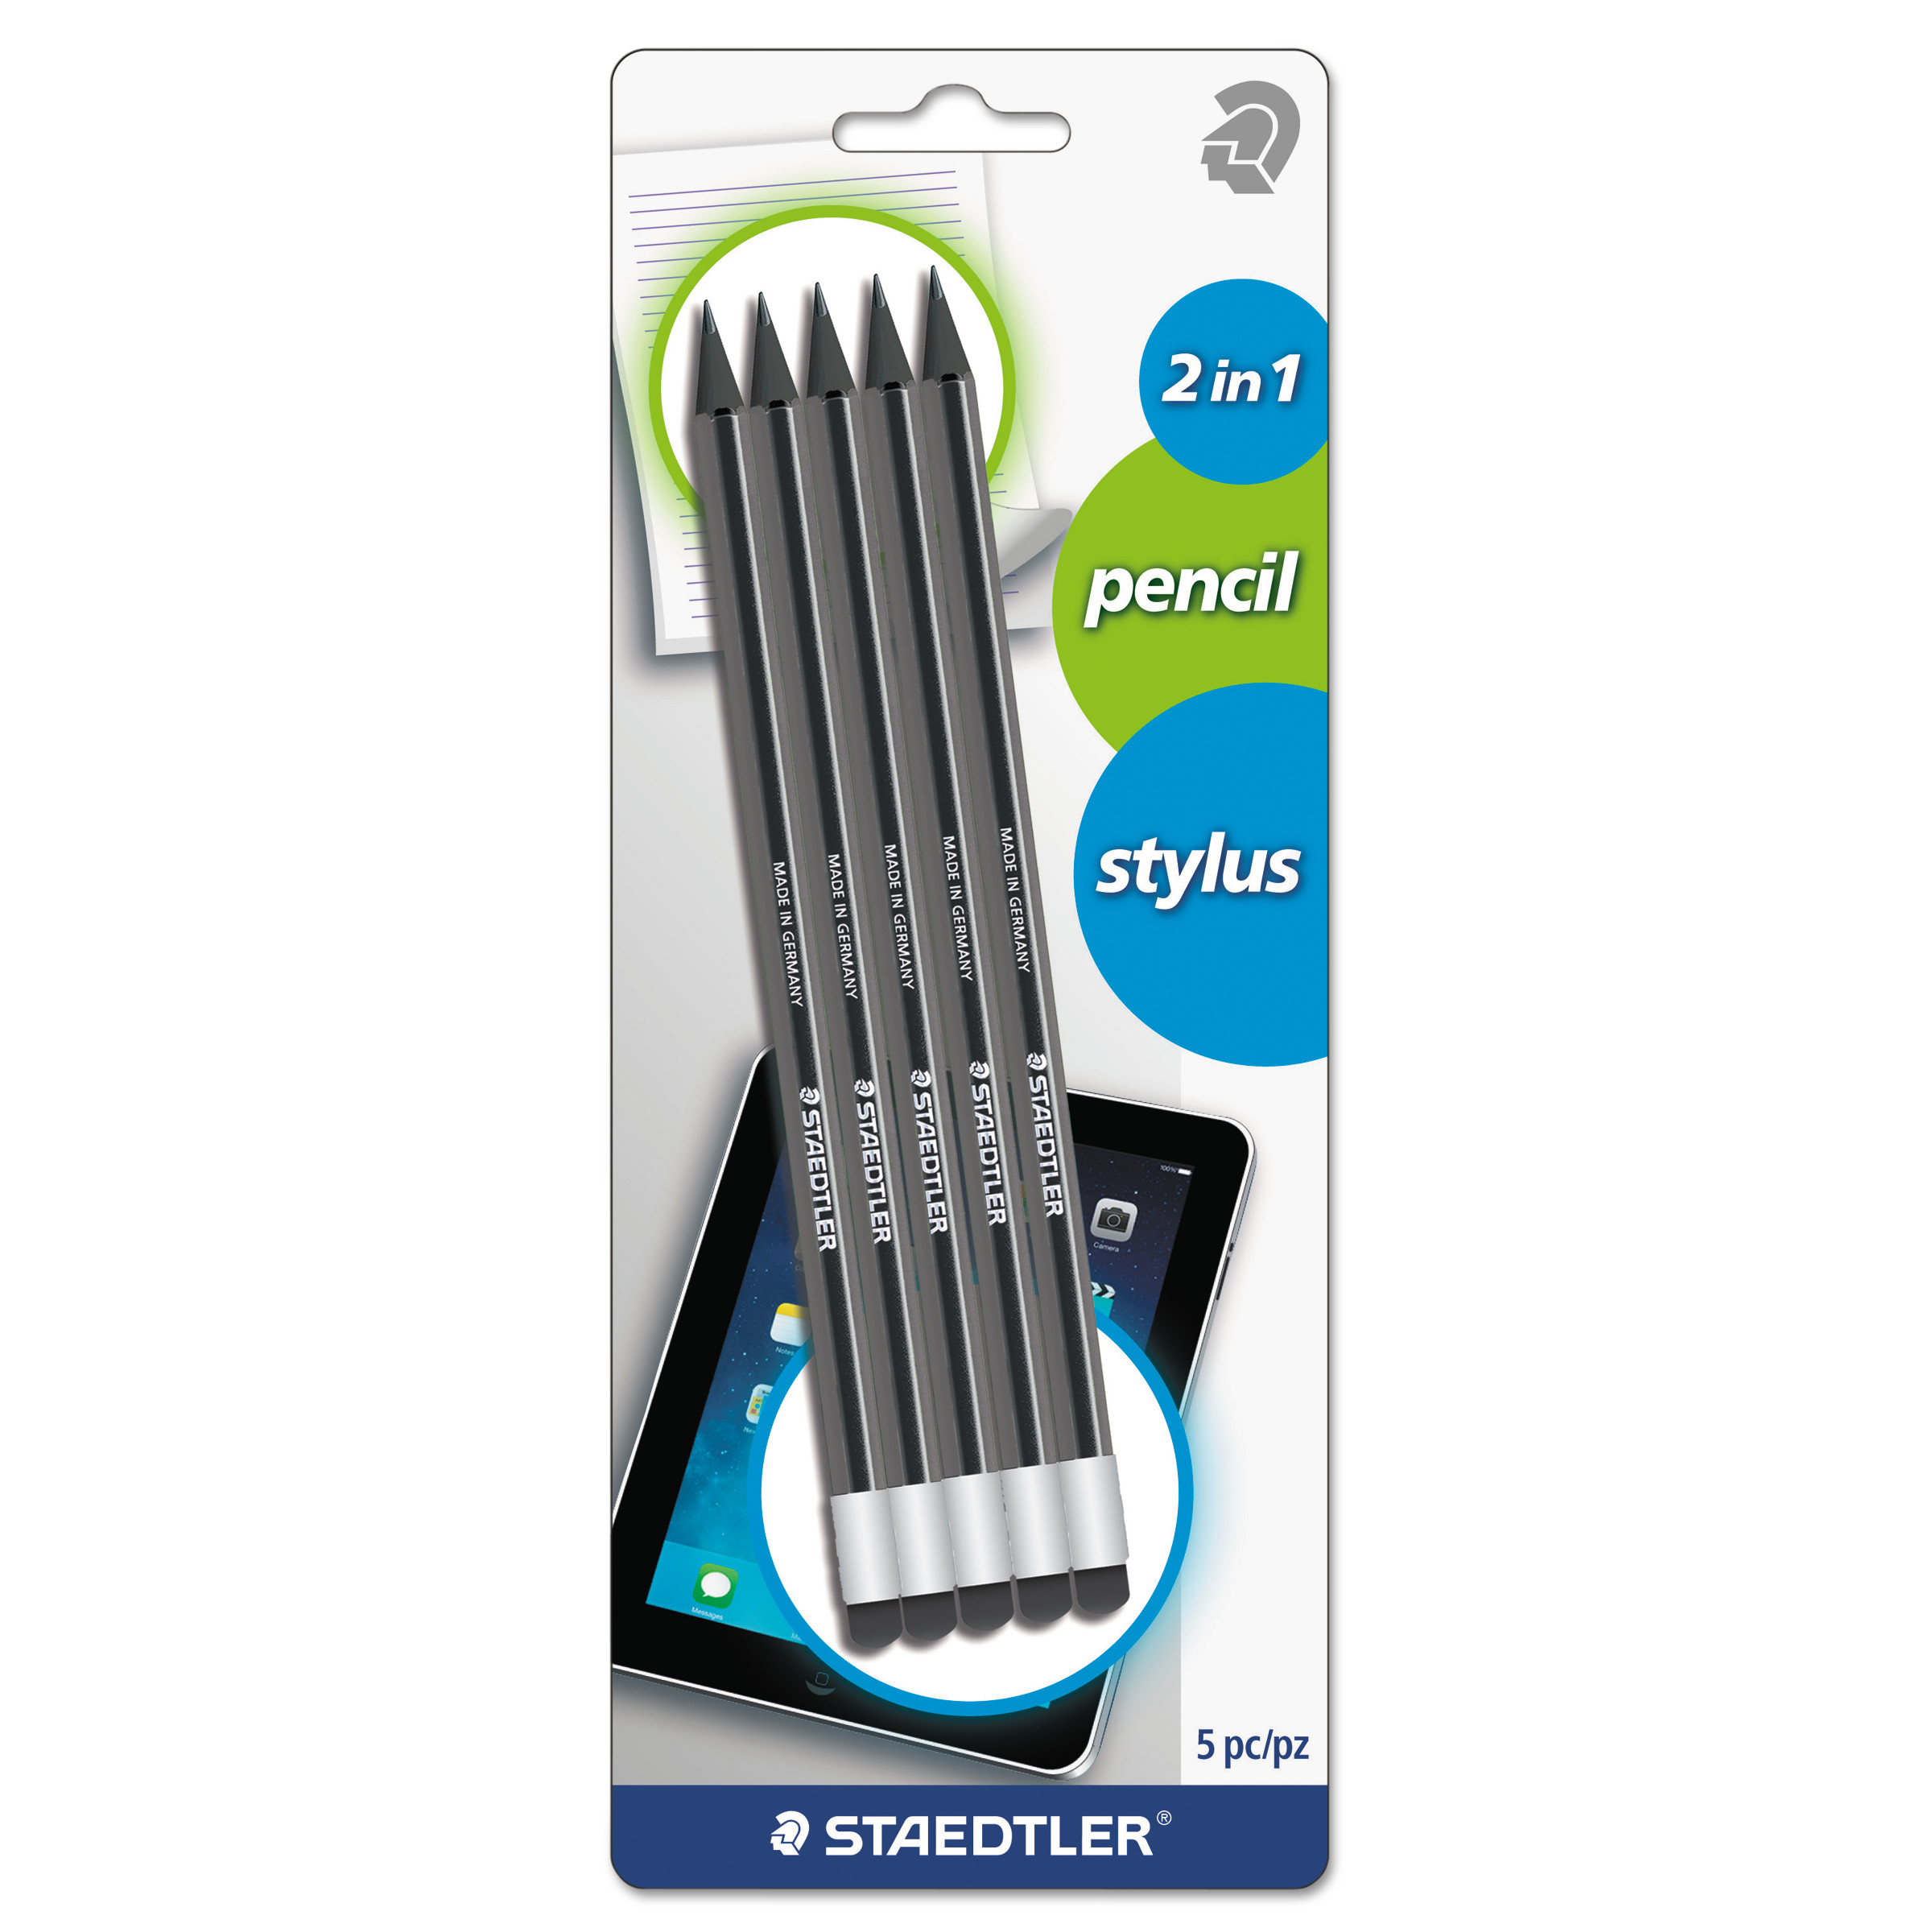 Staedtler Wopex Pencil with Stylus, Green/Black, 5/Pack -STD182SBK5